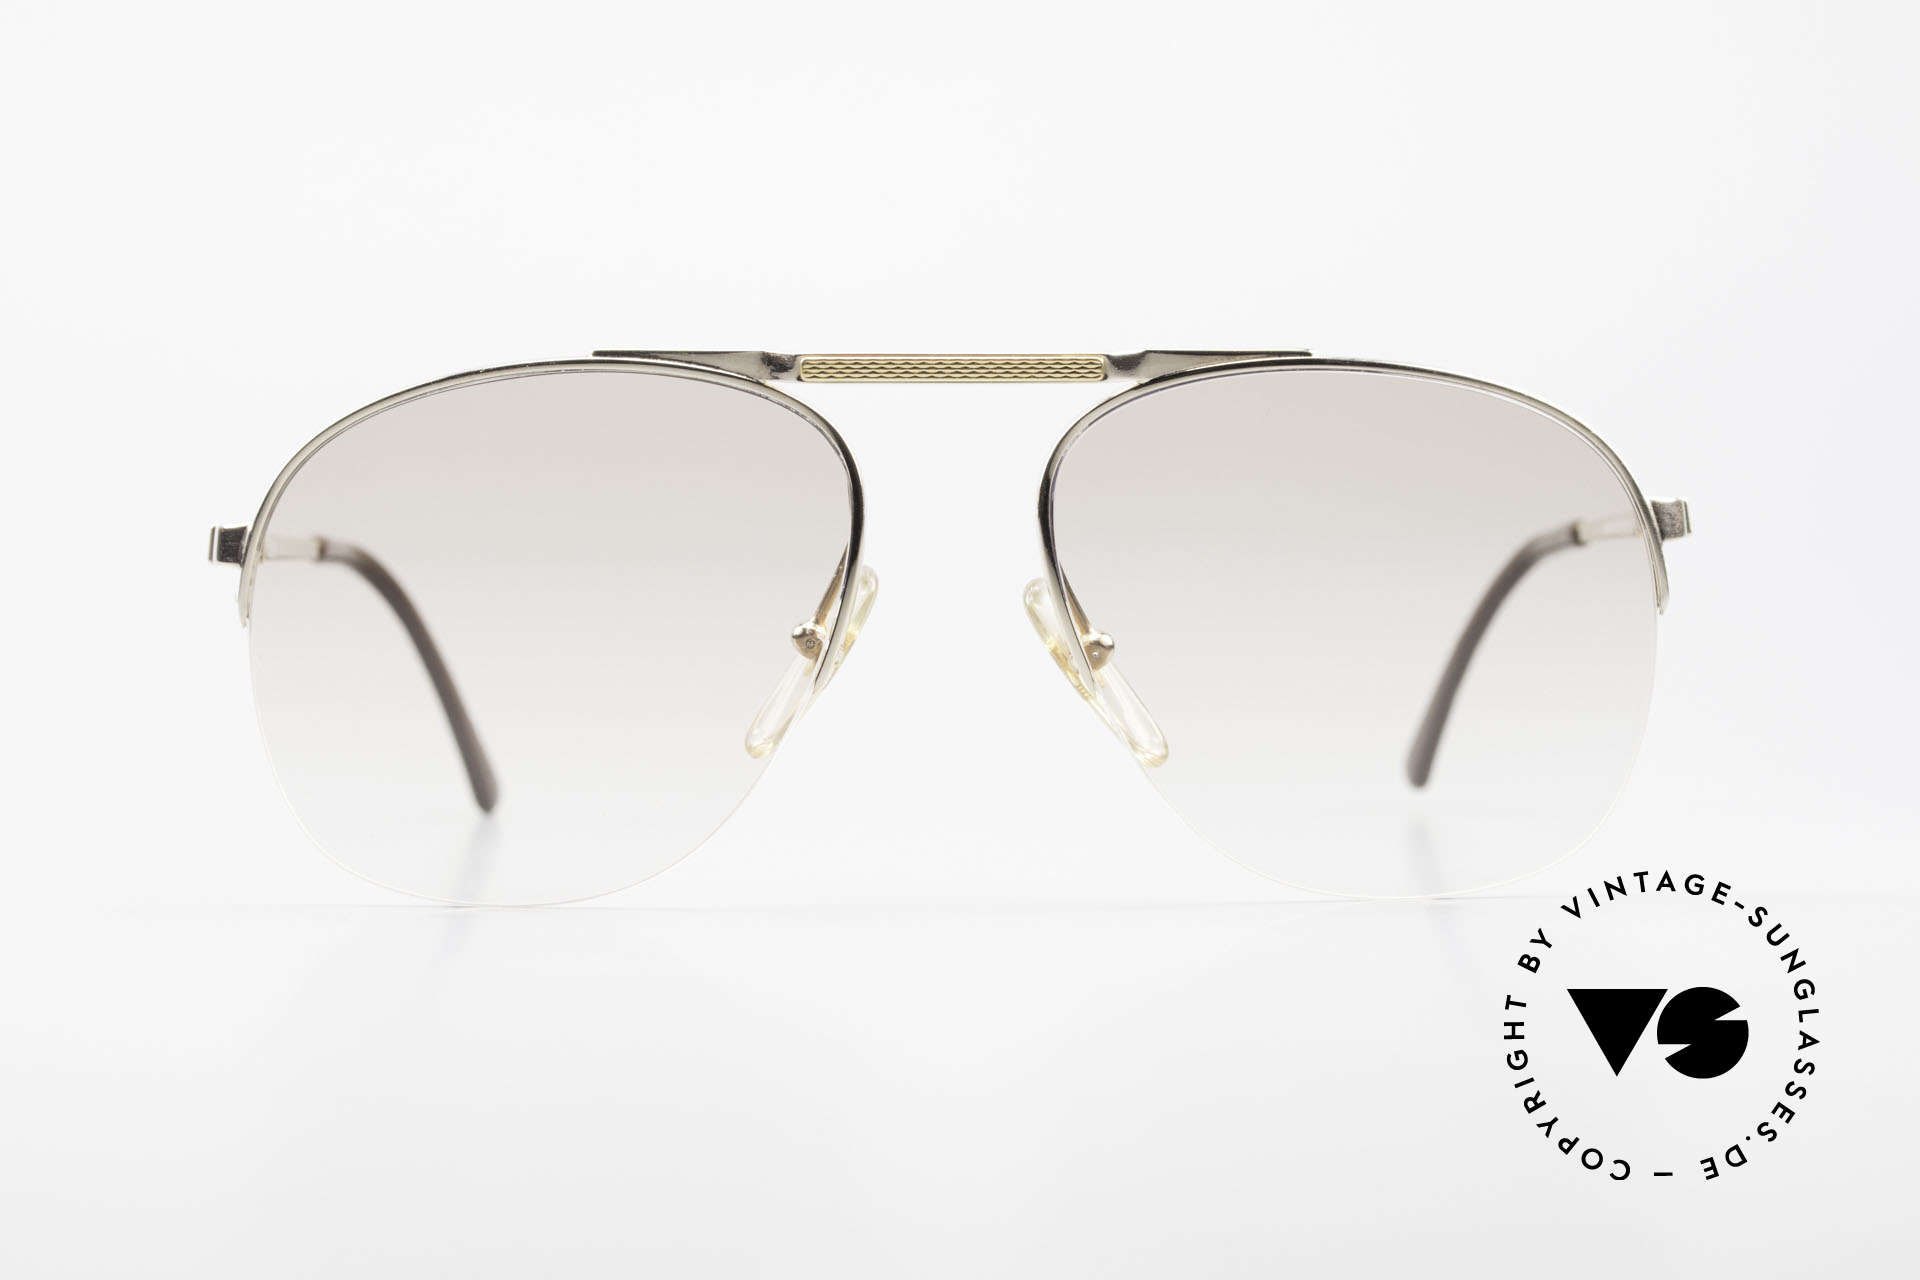 Dunhill 6022 Rare 80's Gentlemen's Frame, extremely noble men's glasses by Dunhill from 1984, Made for Men